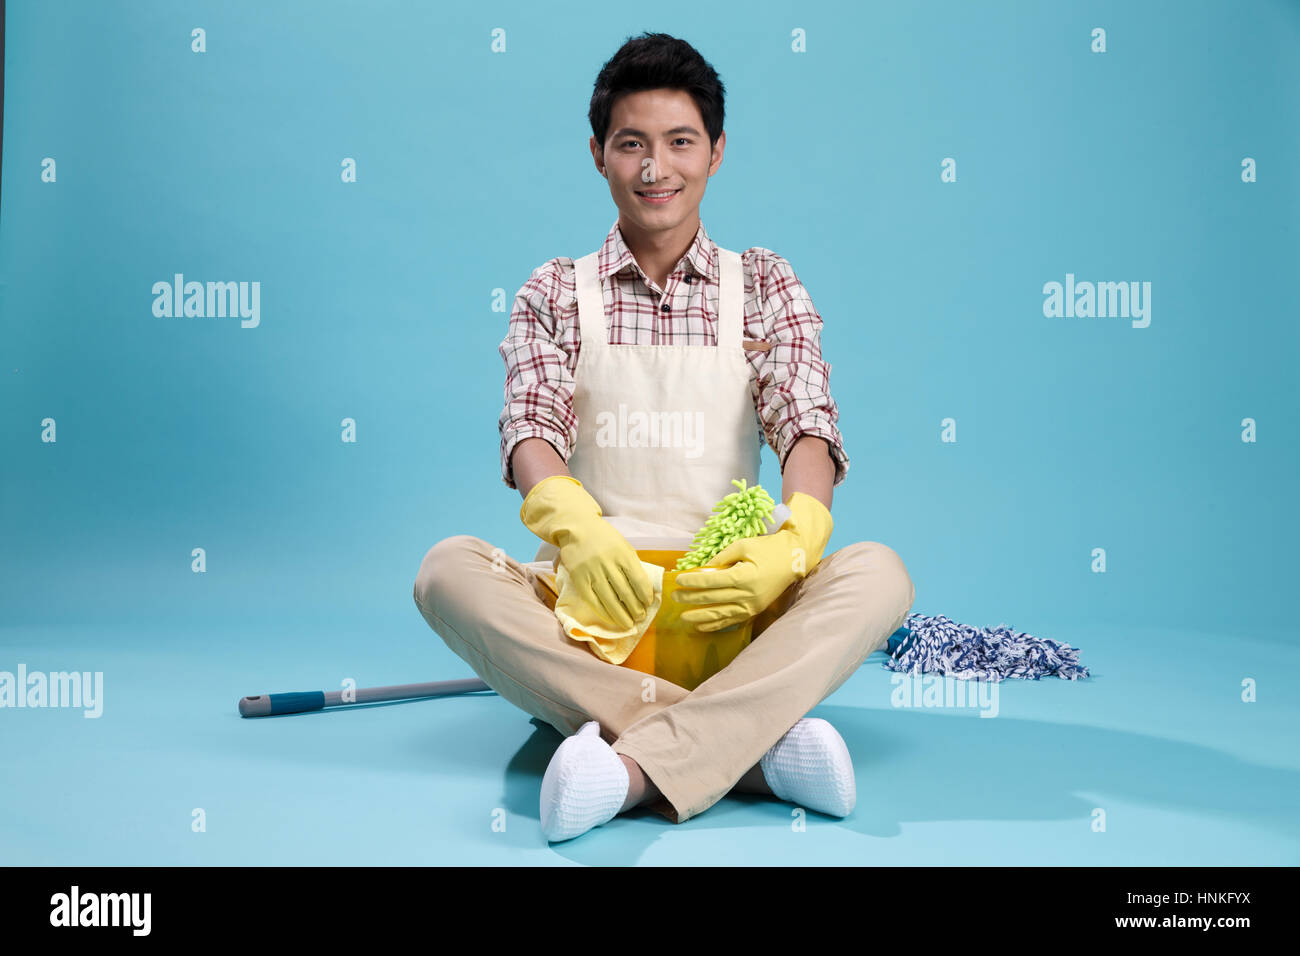 Young men do housework - Stock Image